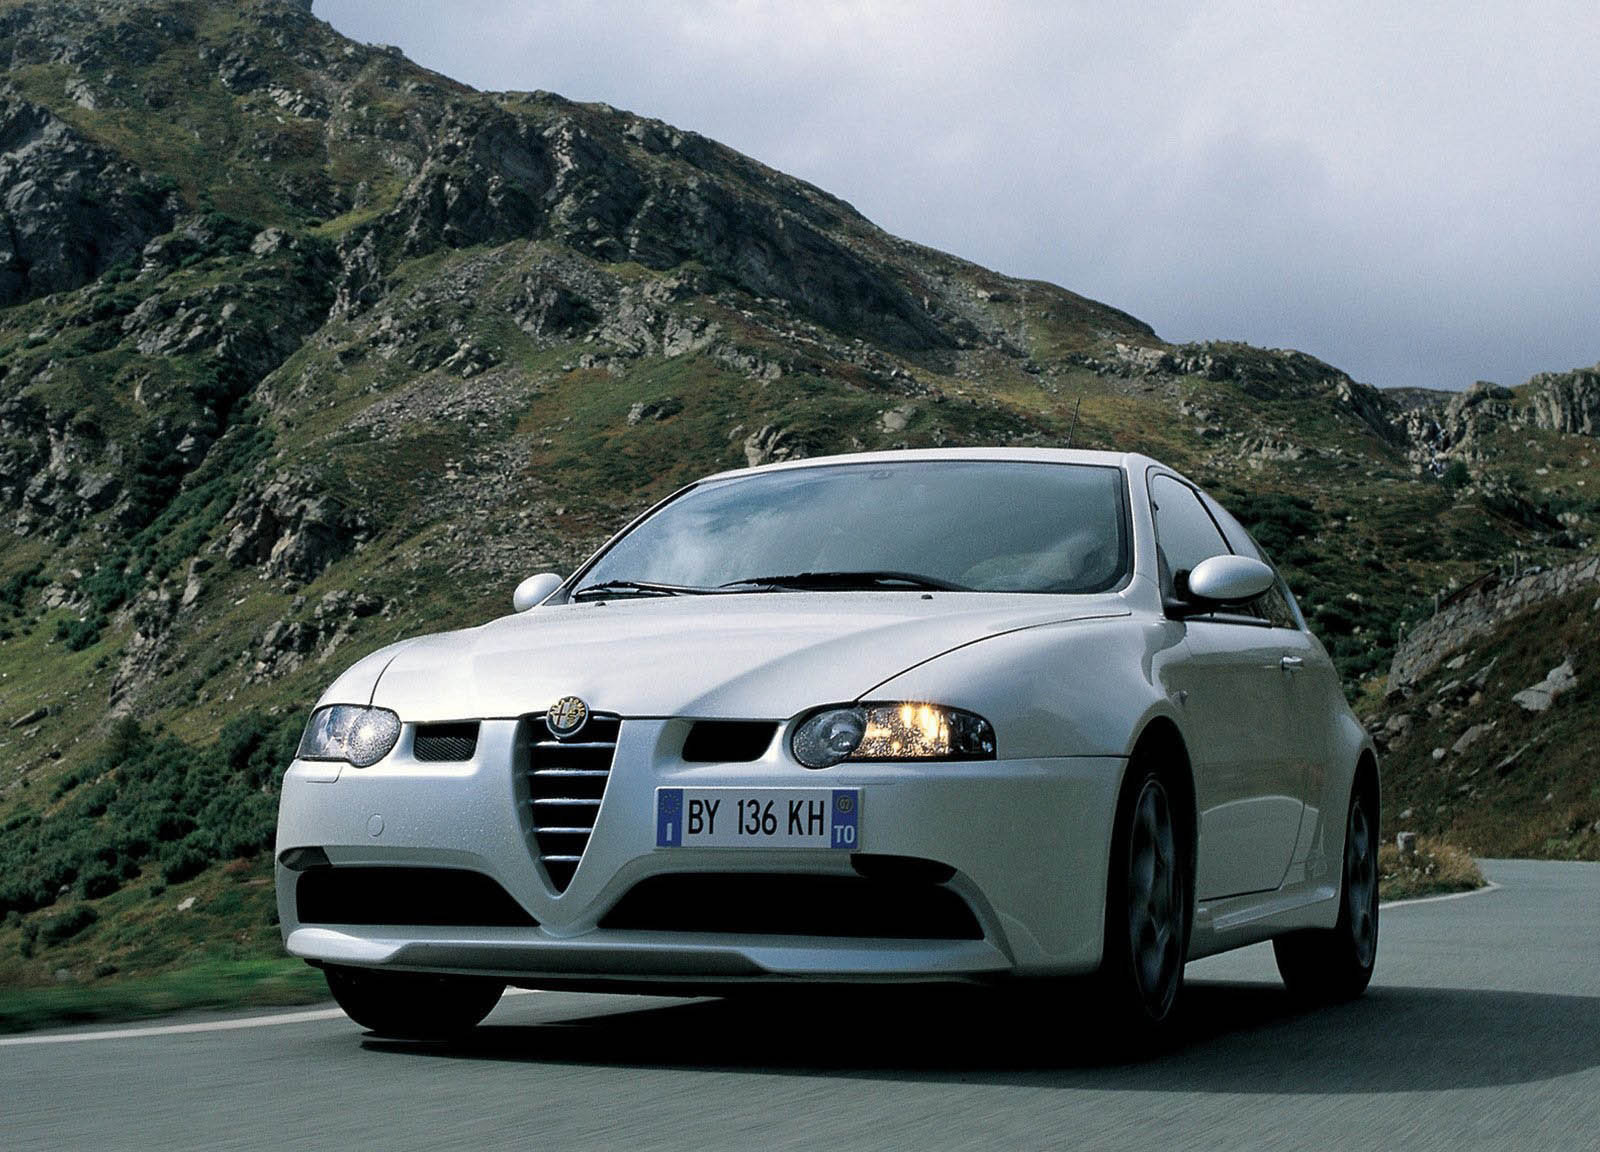 2000 alpha romeo 147 gta picture 221 car review top speed. Black Bedroom Furniture Sets. Home Design Ideas